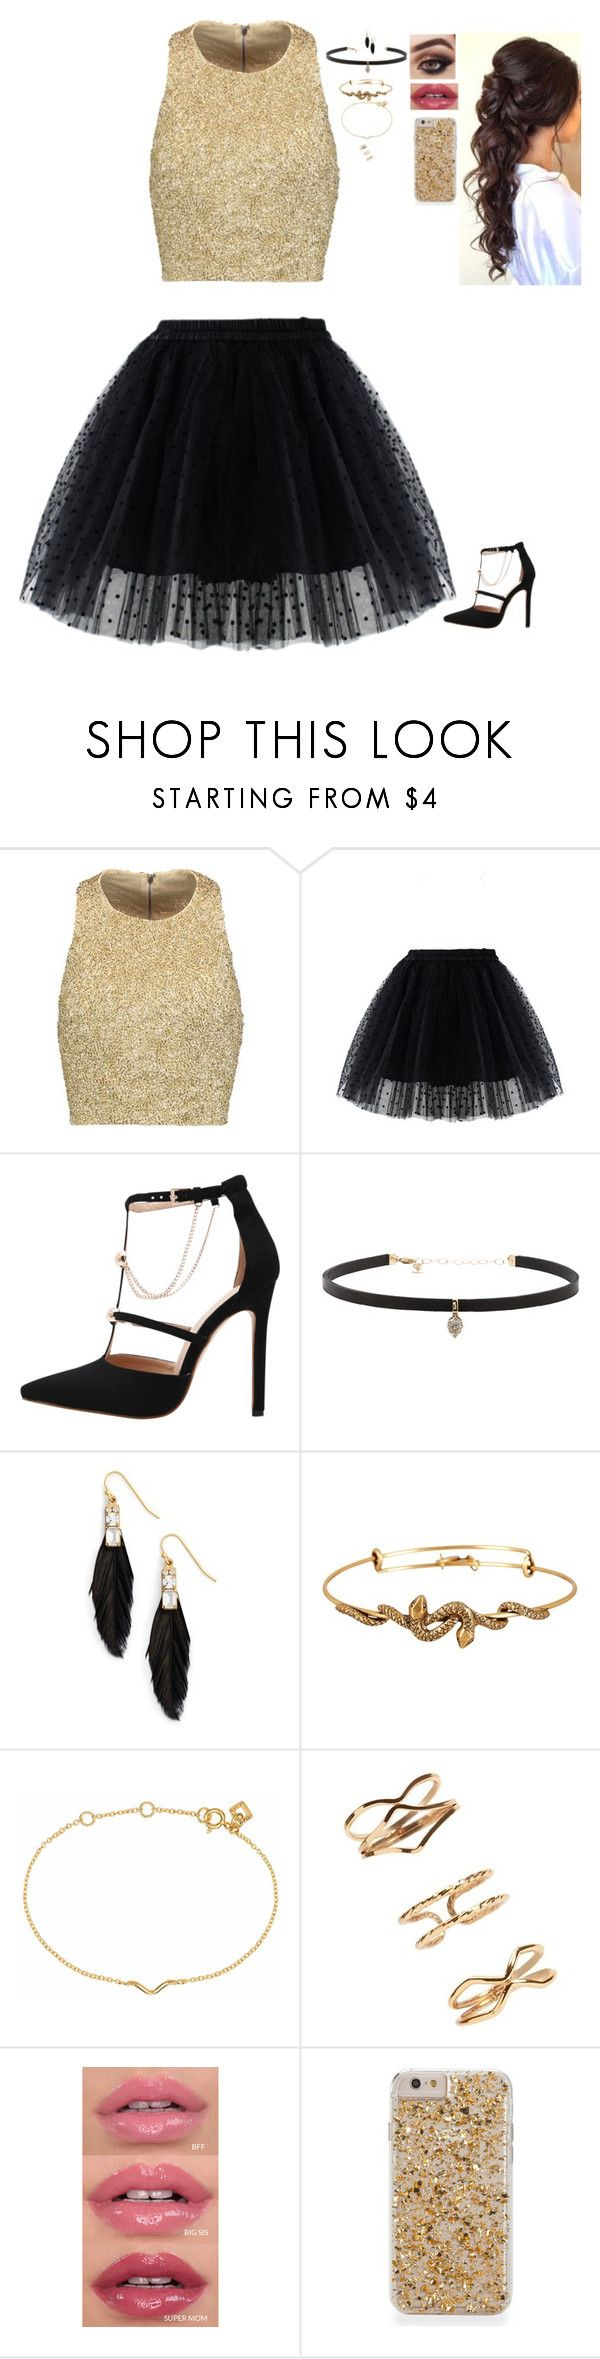 """""""Random Outfit"""" by nataliaace ❤ liked on Polyvore featuring Alice + Olivia, Chicwish, Carbon & Hyde, Sandy Hyun, Alex and Ani, Maya Magal and Forever 21"""